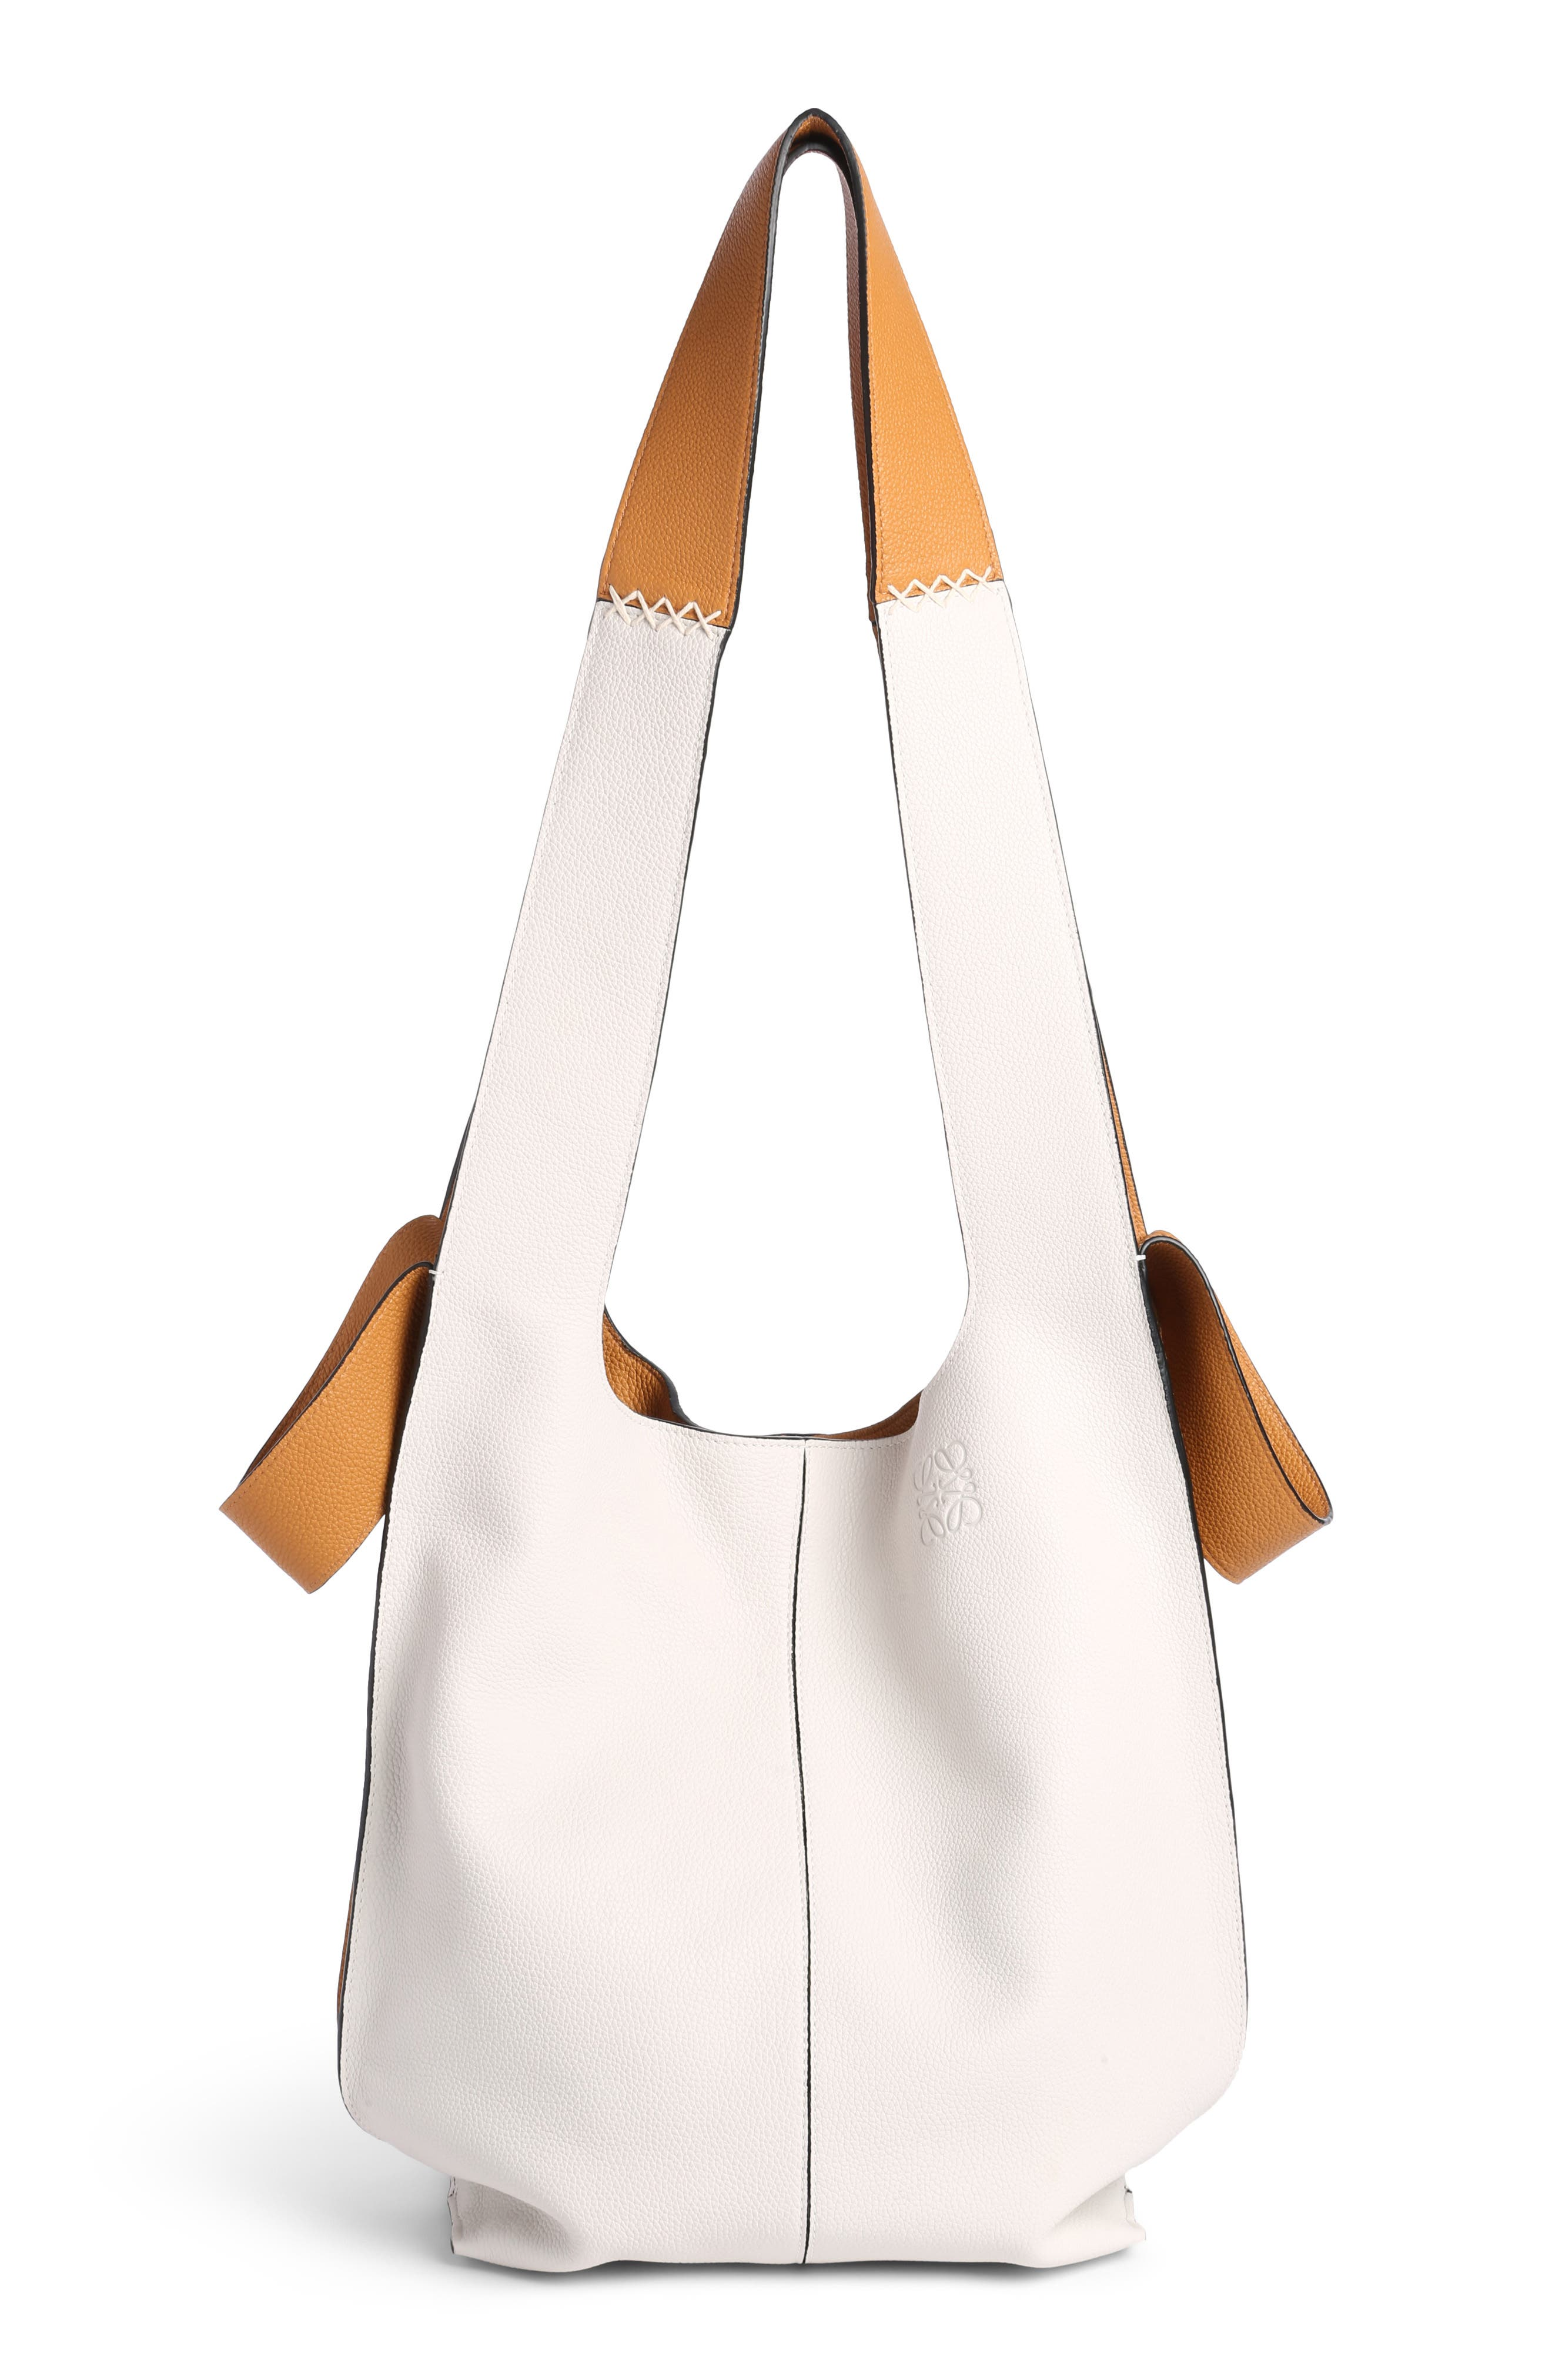 Leather Hobo Tote Bag,                         Main,                         color, Soft White/ Amber